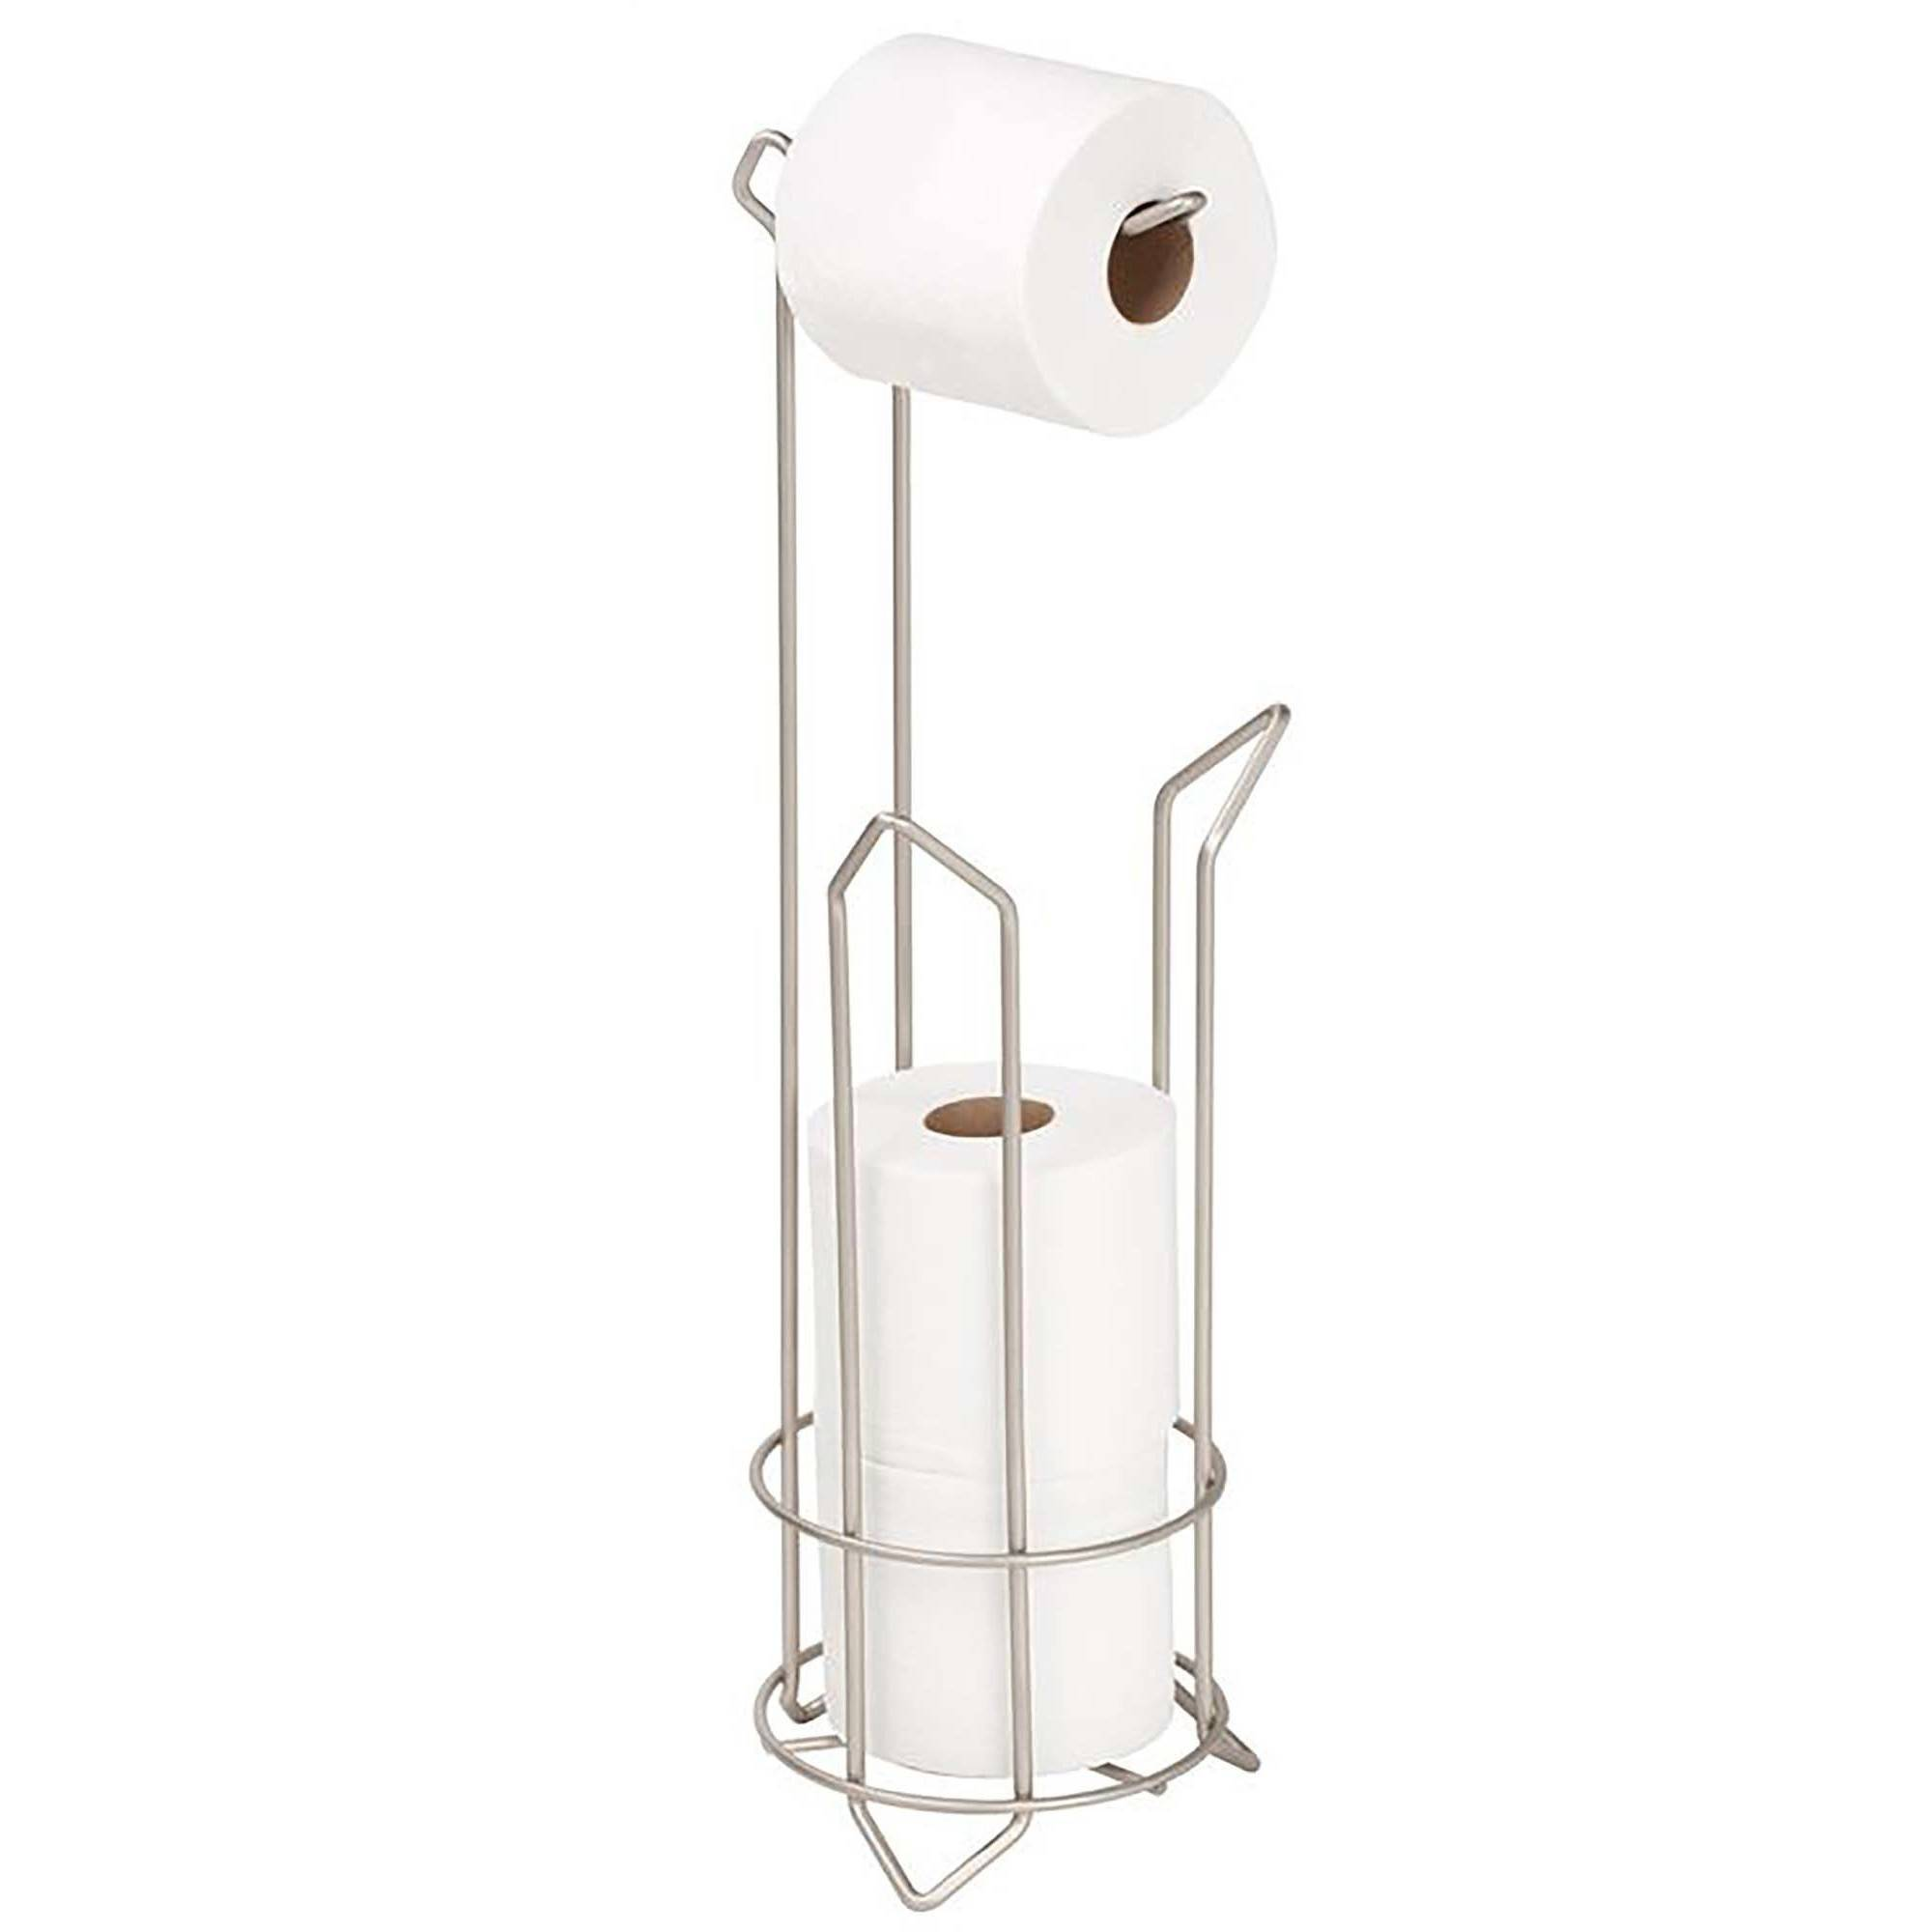 "Click here to buy Bath Bliss Satin Toilet Paper Dispenser Holder, 6.30"" x 6.30"" x 24.02"" by Kennedy International, INC.."